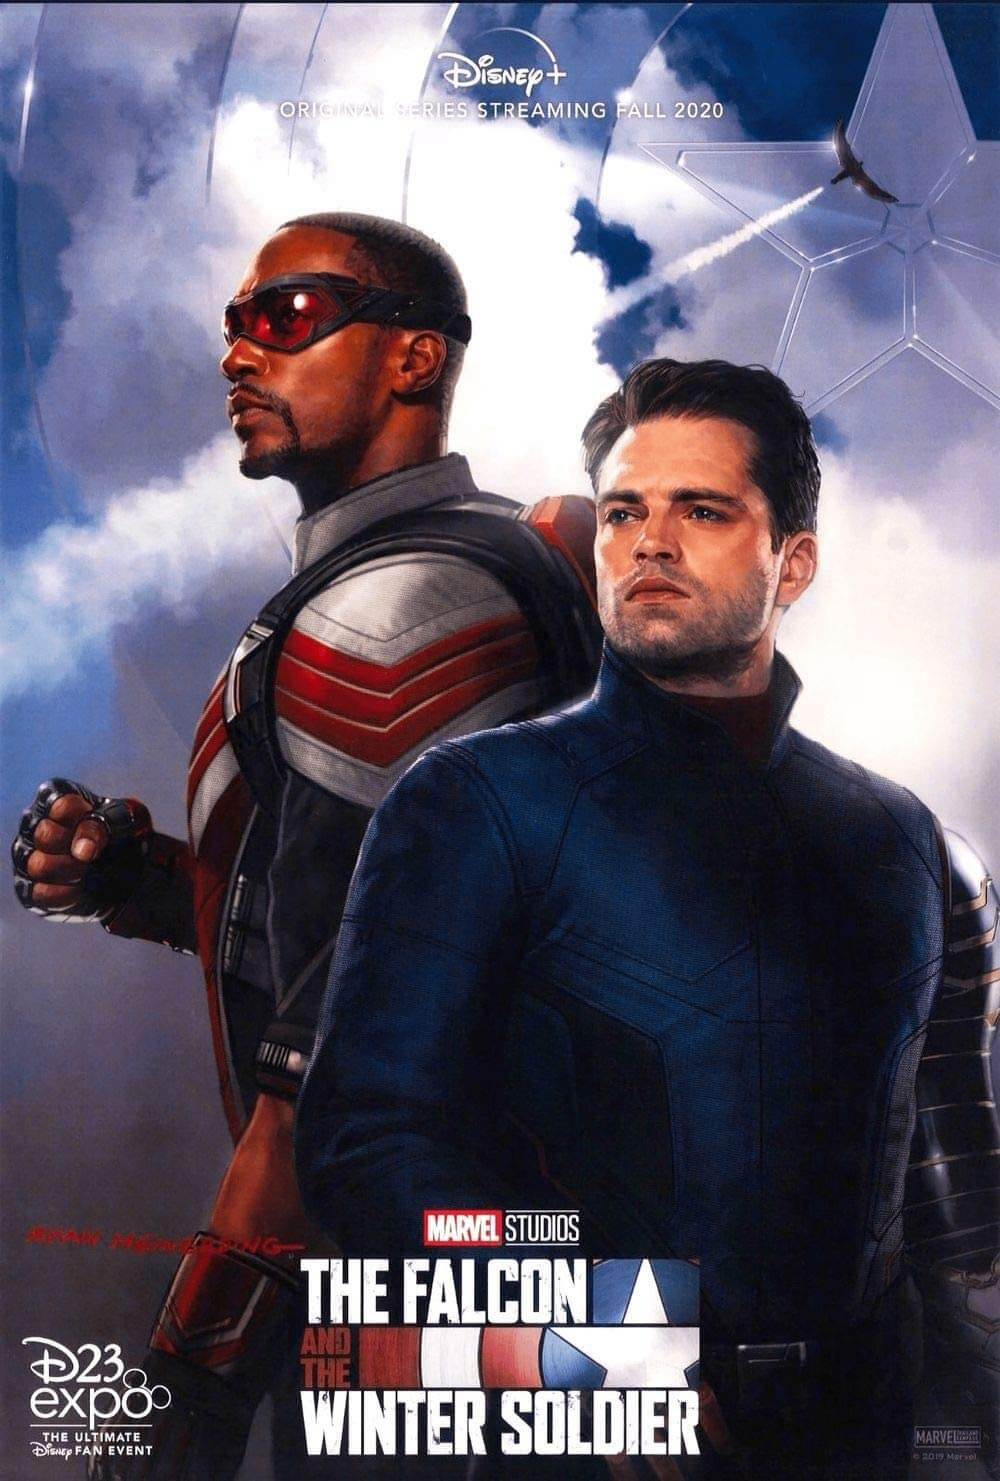 The Falcon and the Winter Soldier series